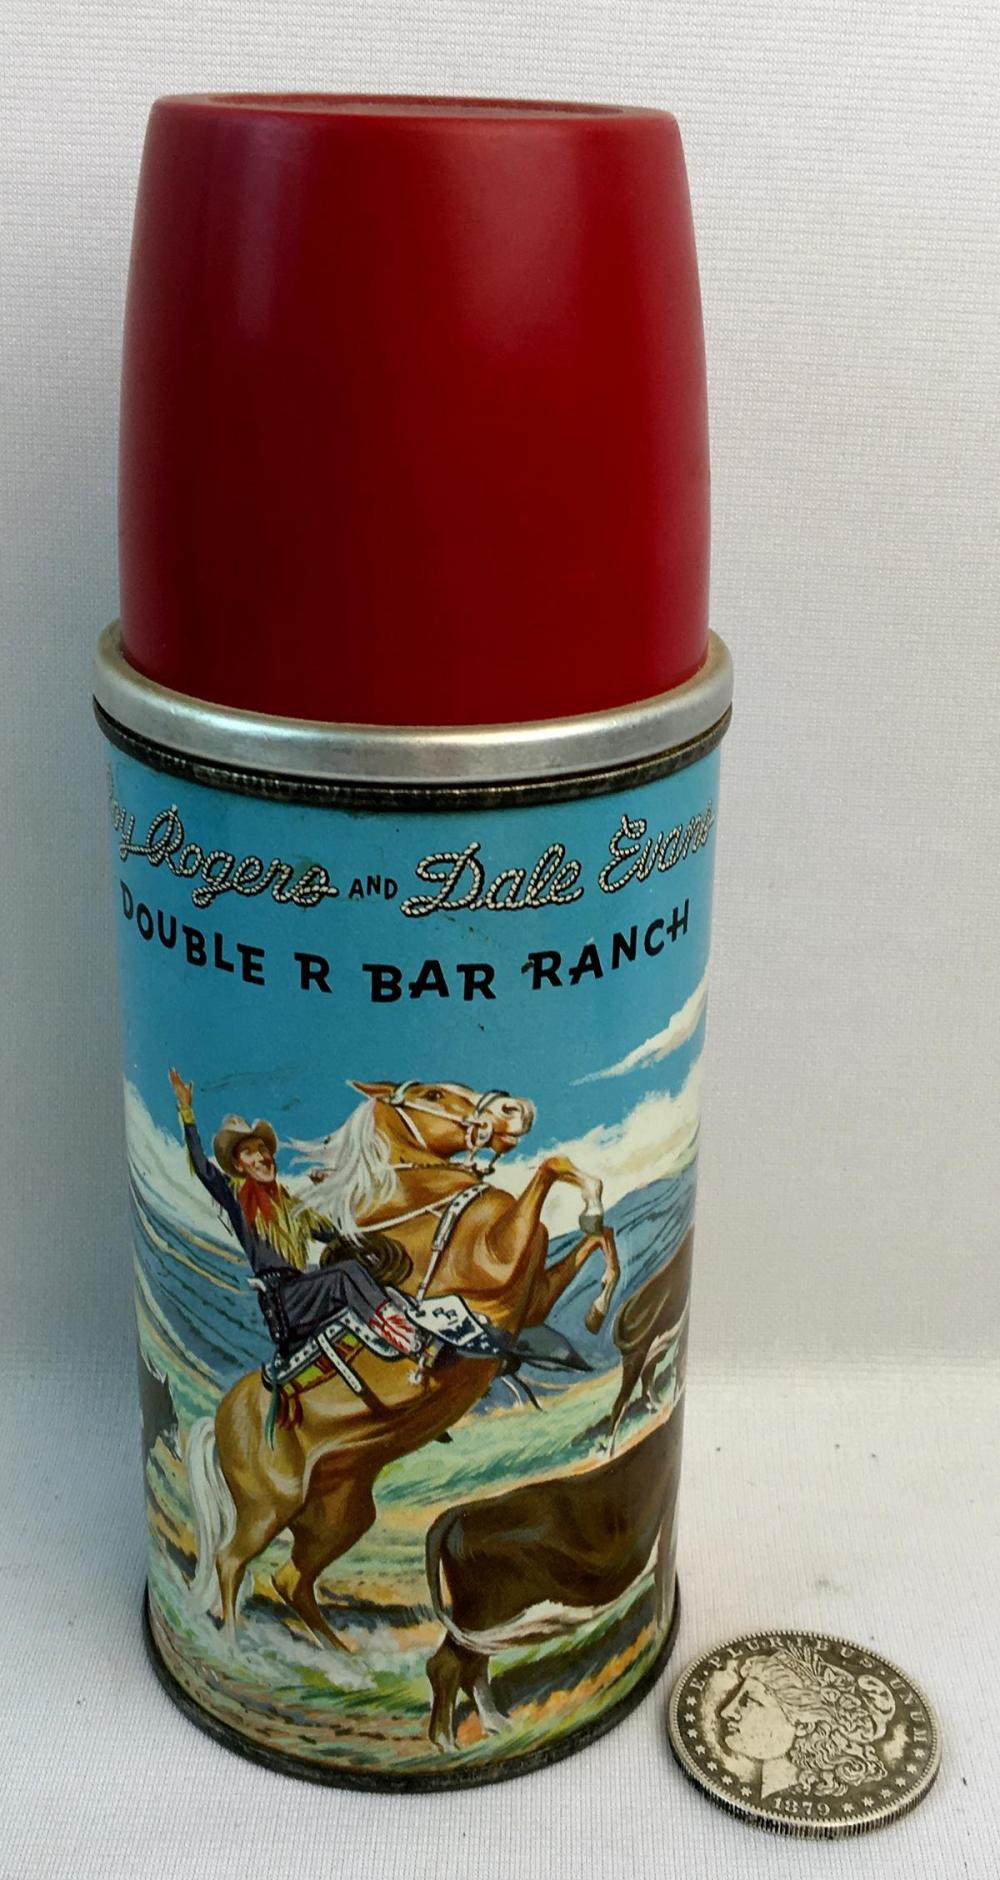 Vintage 1950'5 Roy Rogers and Dale Evans Double R Bar Ranch Thermos